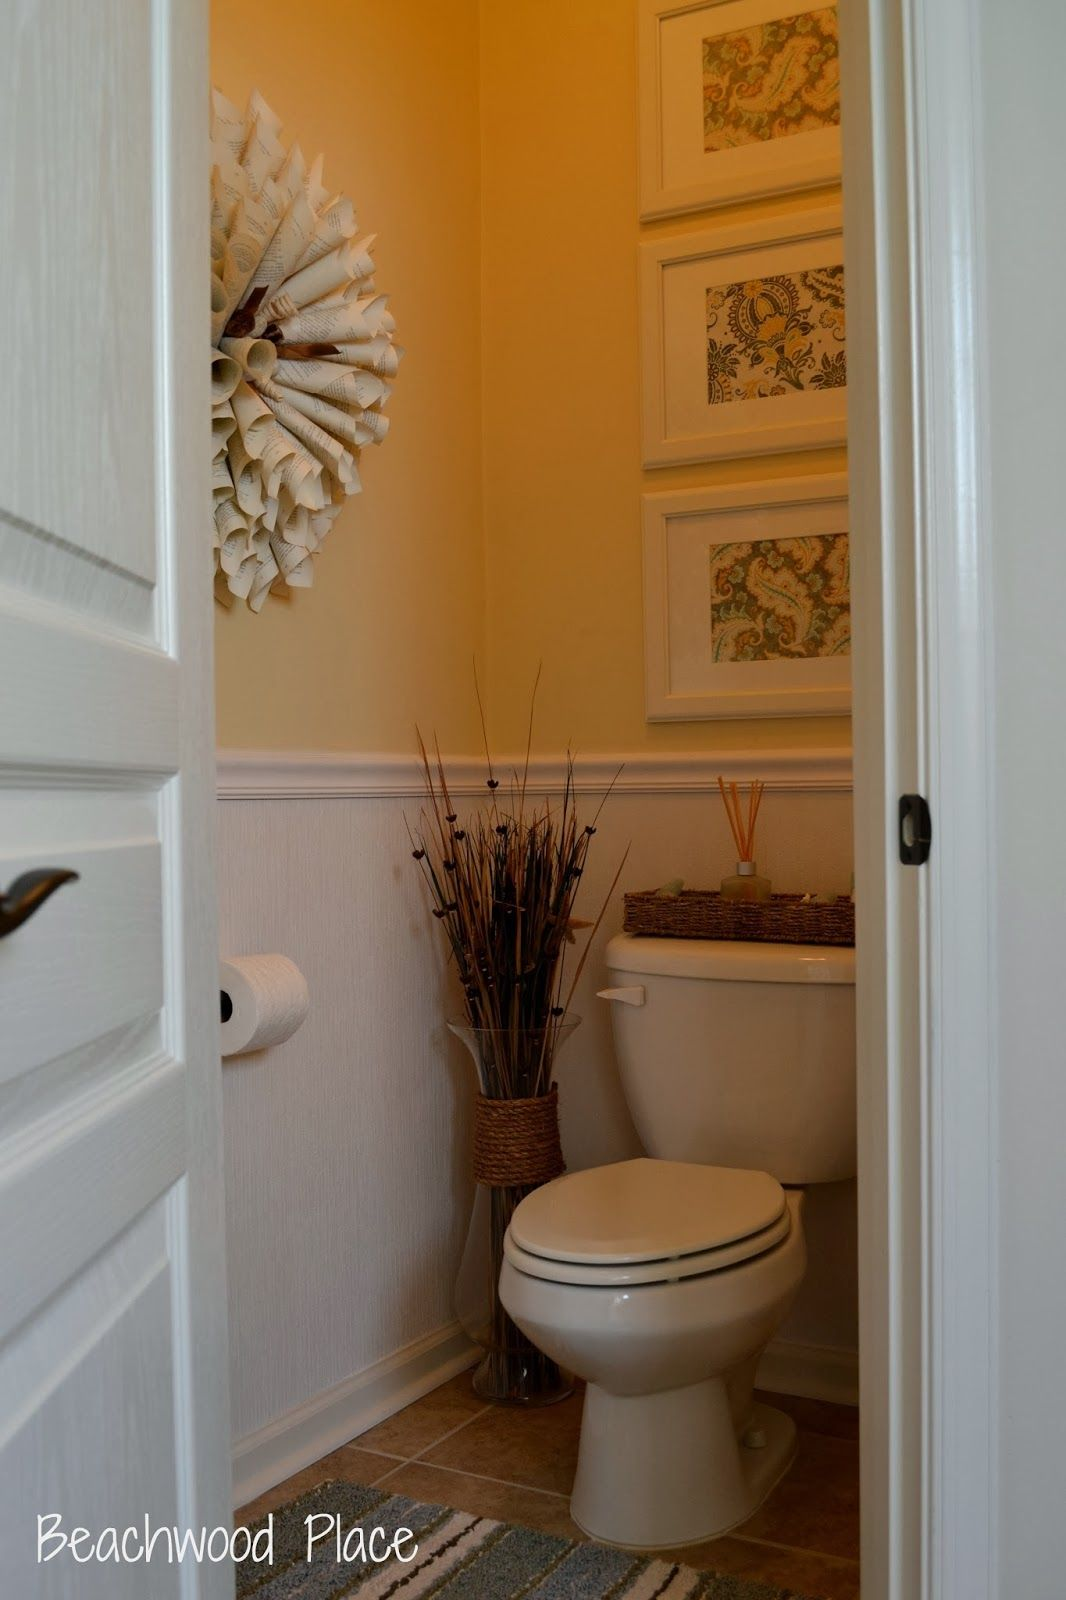 Bathroom | Area Houzz Design | Half Bathroom Decor, Guest Bathroom Small, Half Bathroom